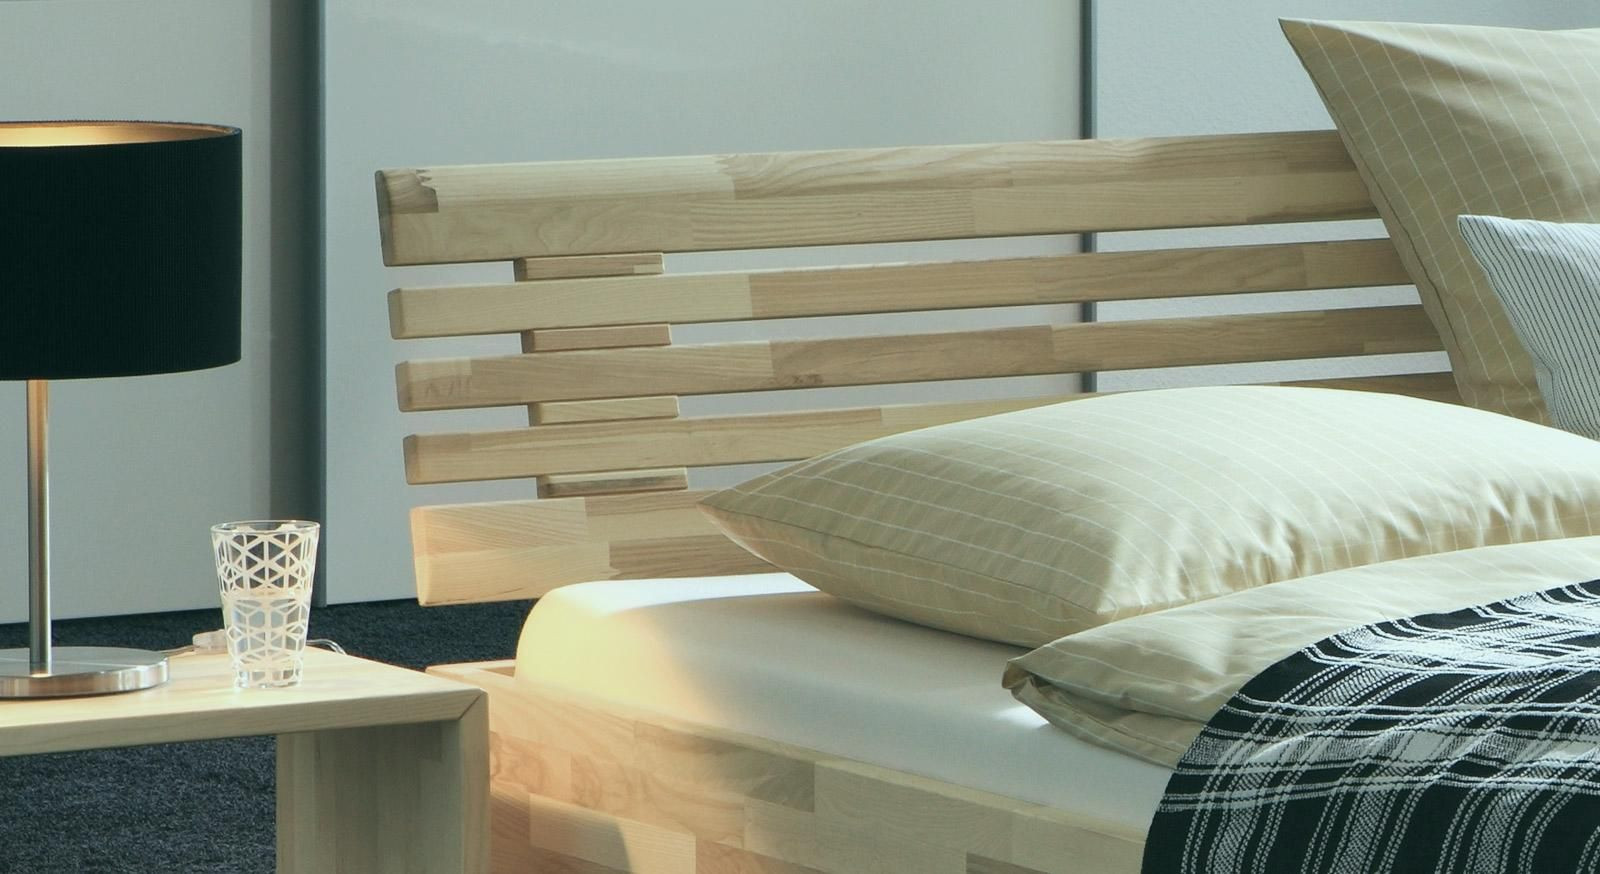 Full Size of Kopfteil Bett Holz Perfekt Selber Bauen Vr Himmel Boxspring Landhausstil Bad Unterschrank Bette Badewannen Badewanne Clinique Even Better Make Up Möbel Boss Wohnzimmer Bett Rückwand Holz